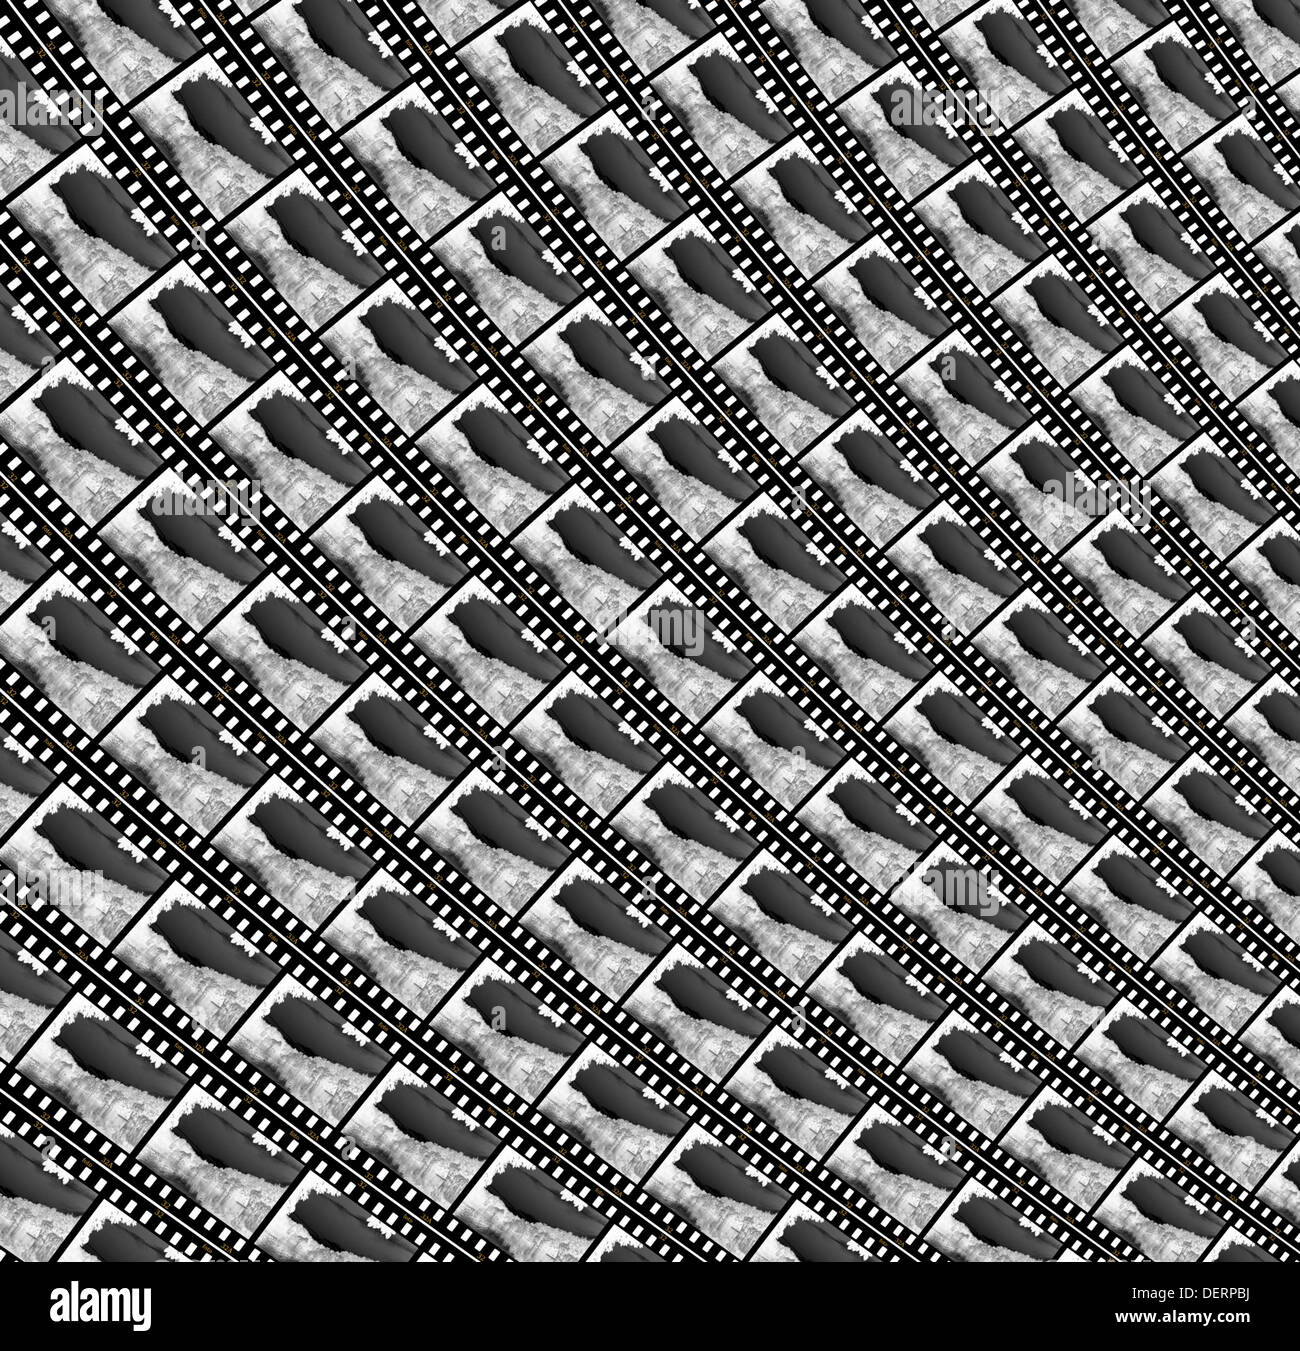 background from many blackly white photographic plates Stock Photo